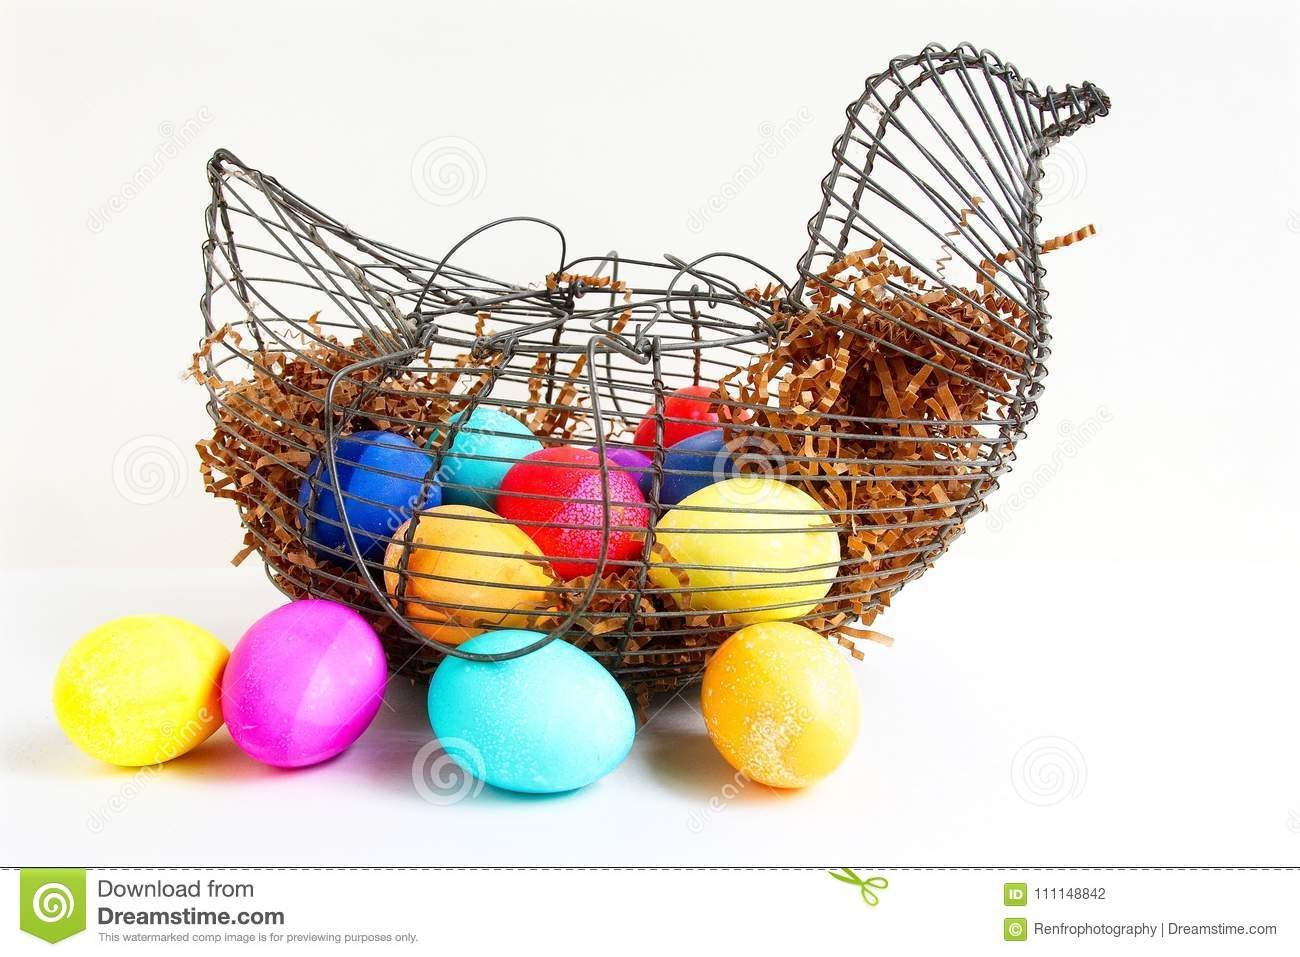 Bright colored Easter eggs in a wire chicken basket.